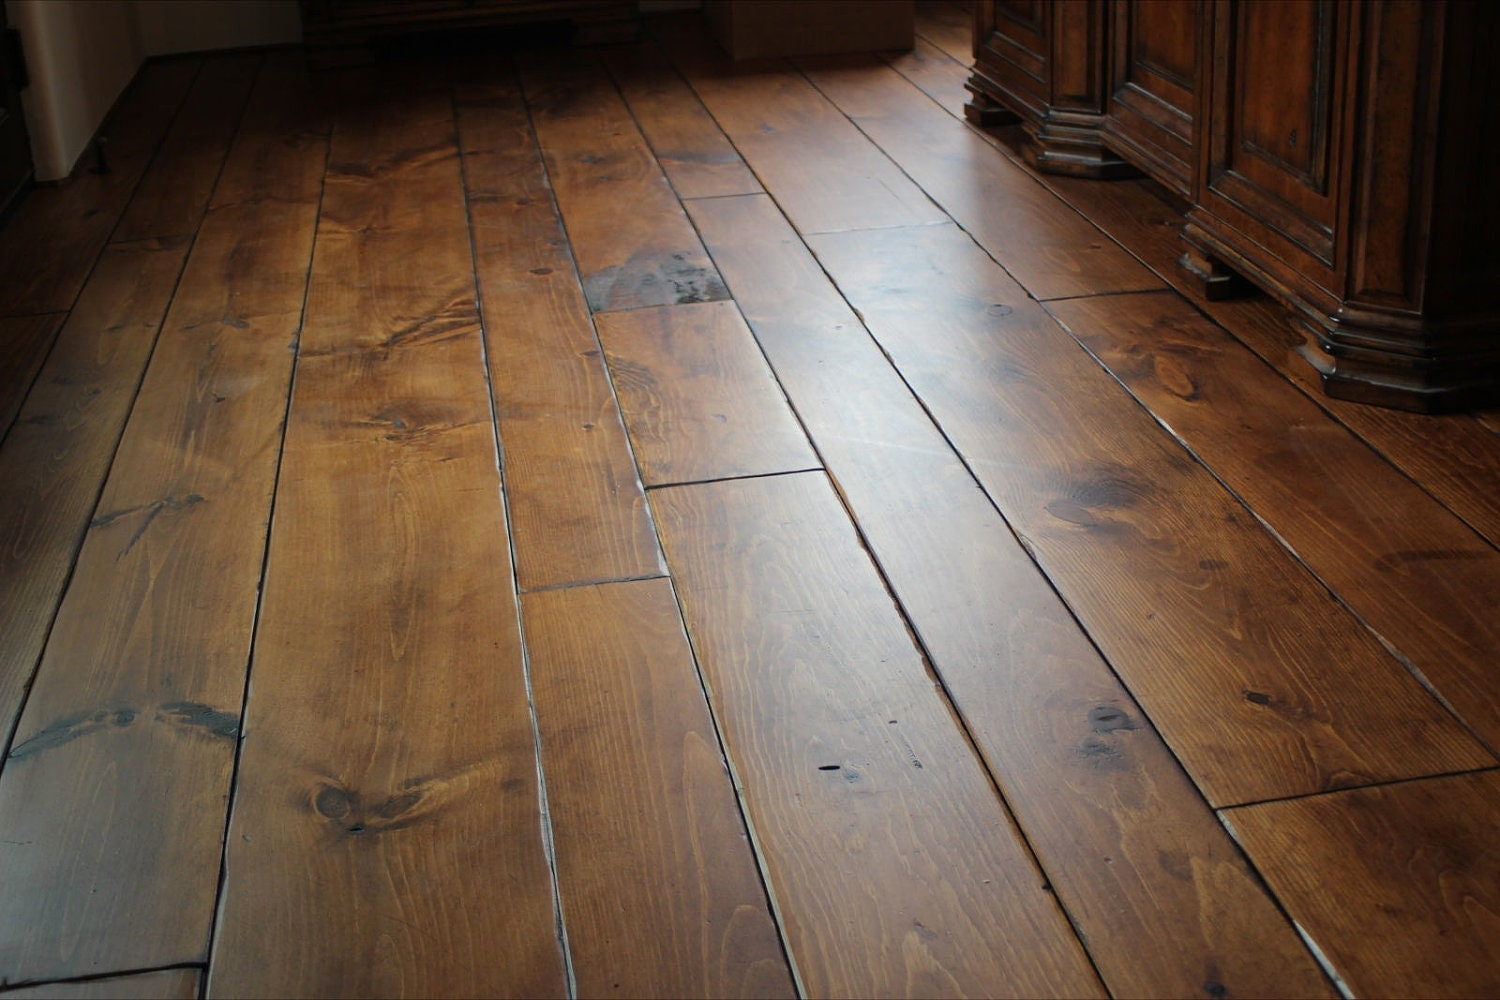 Eastern white pine old growth hardwood flooring solid wood for Real oak hardwood flooring